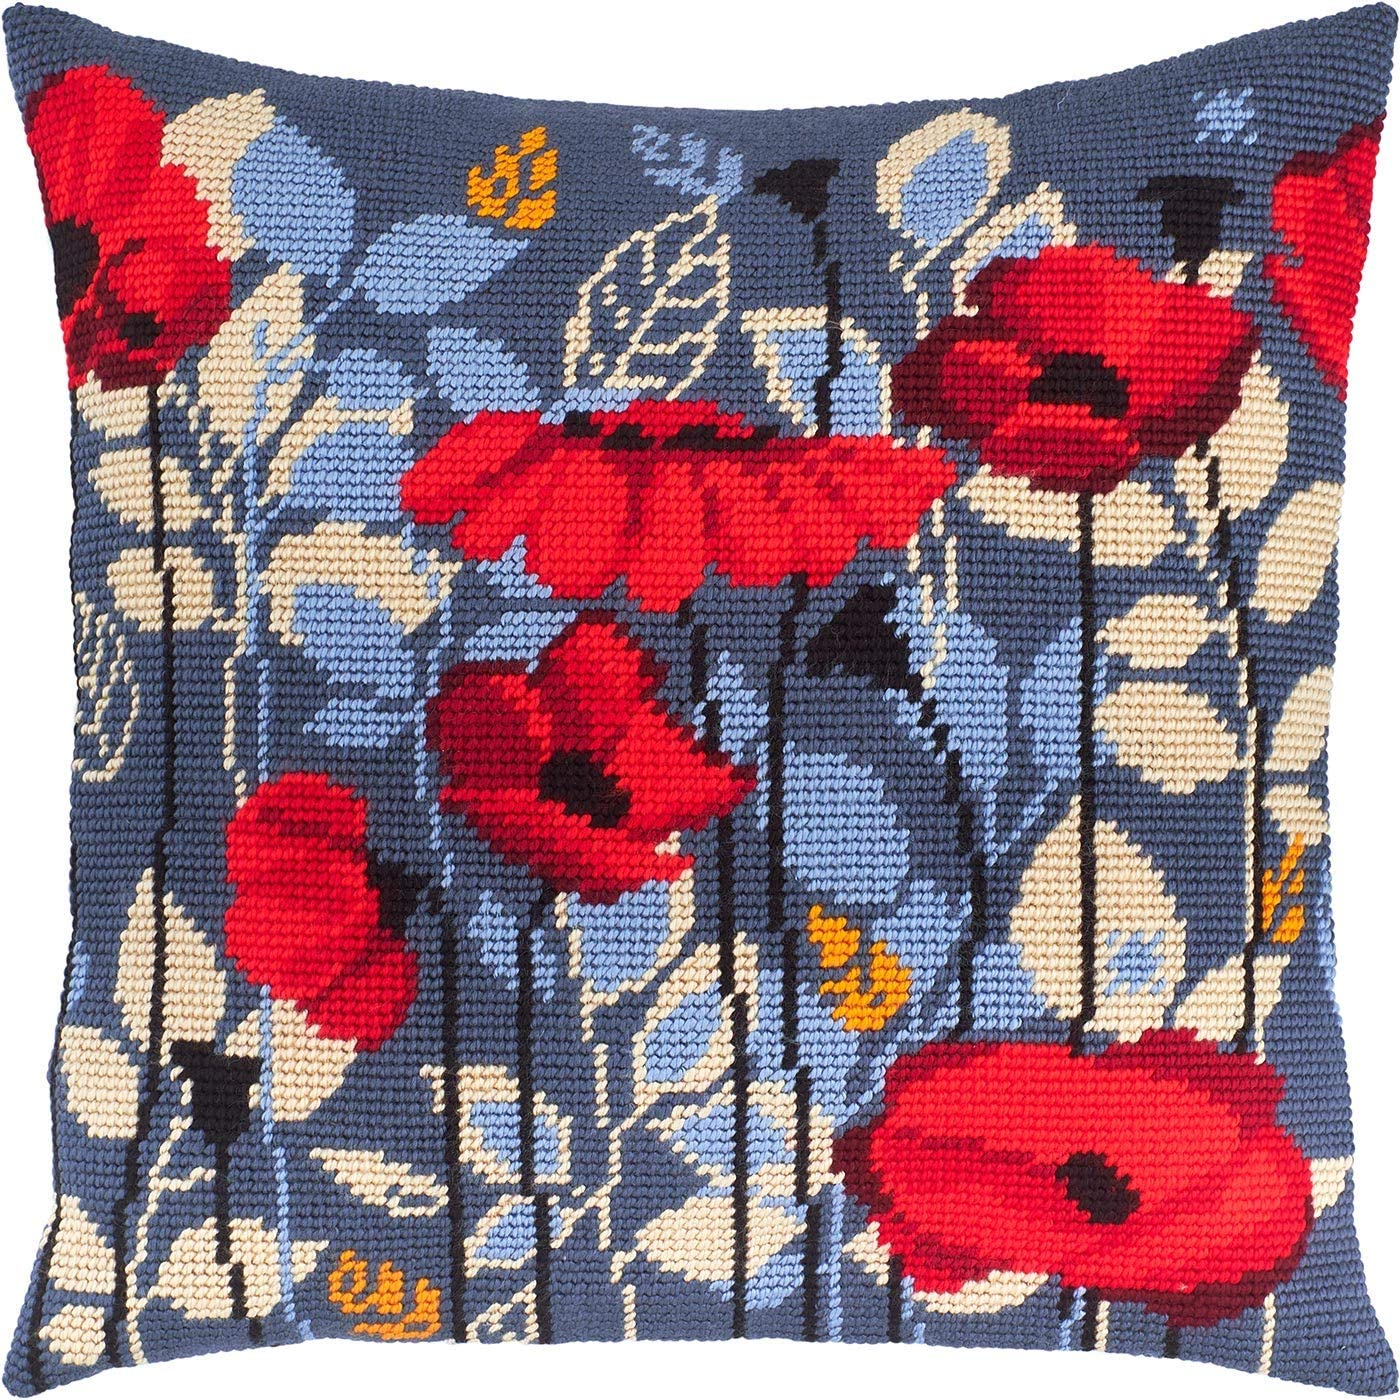 European Quality Throw Pillow 16/×16 Inches Poppies in The Evening Printed Tapestry Canvas Needlepoint Kit